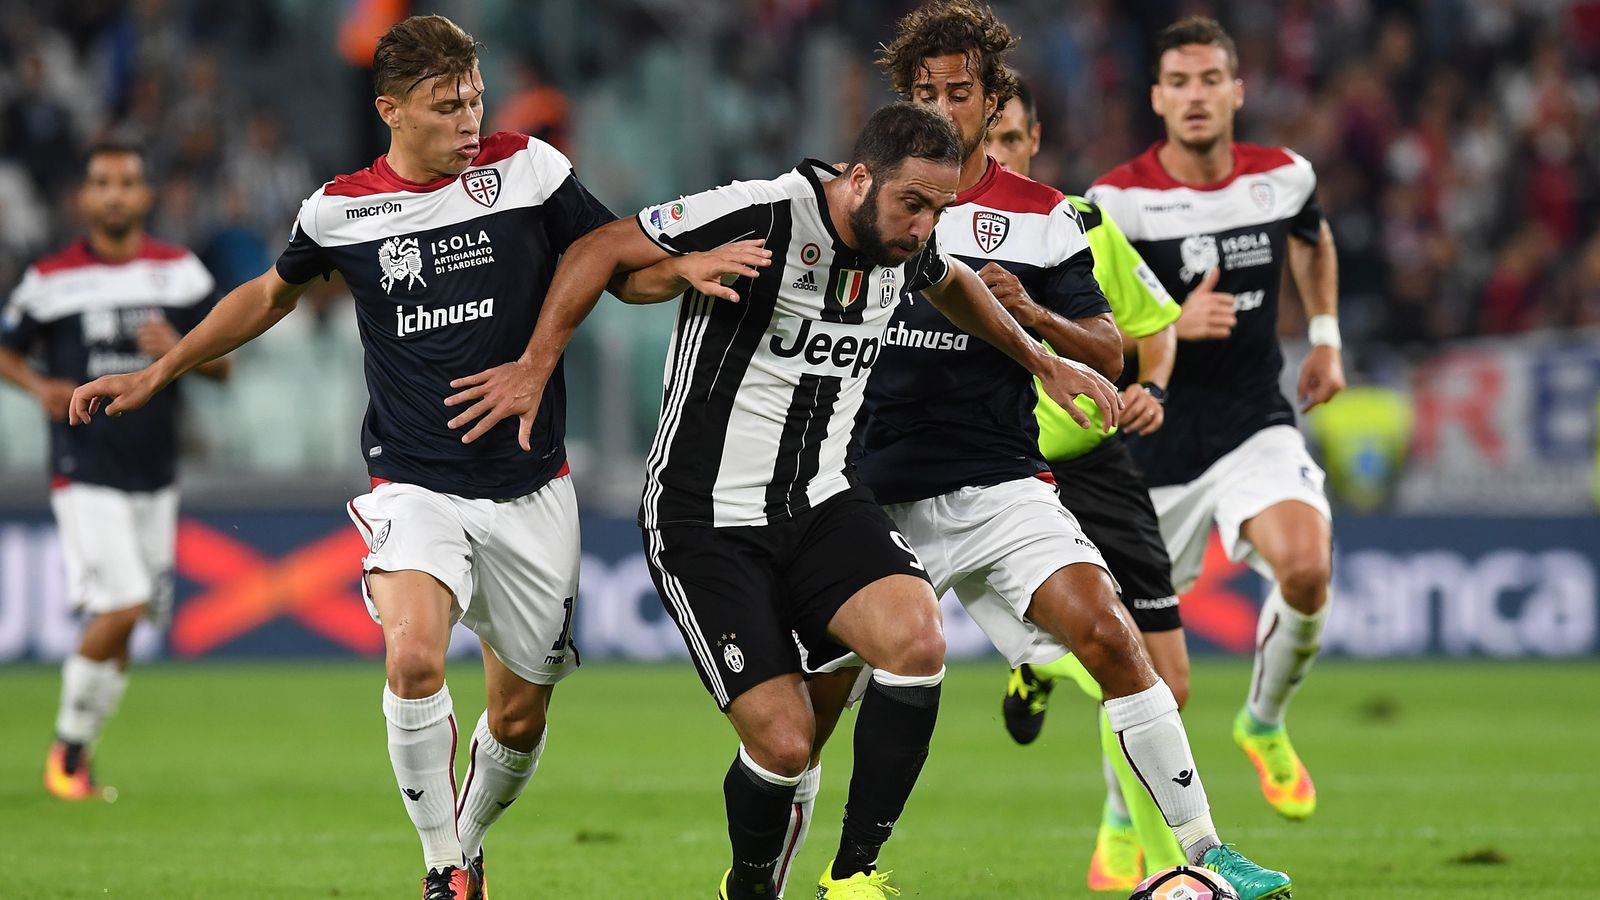 juventus vs cagliari match preview time tv schedule and how to watch the serie a black. Black Bedroom Furniture Sets. Home Design Ideas